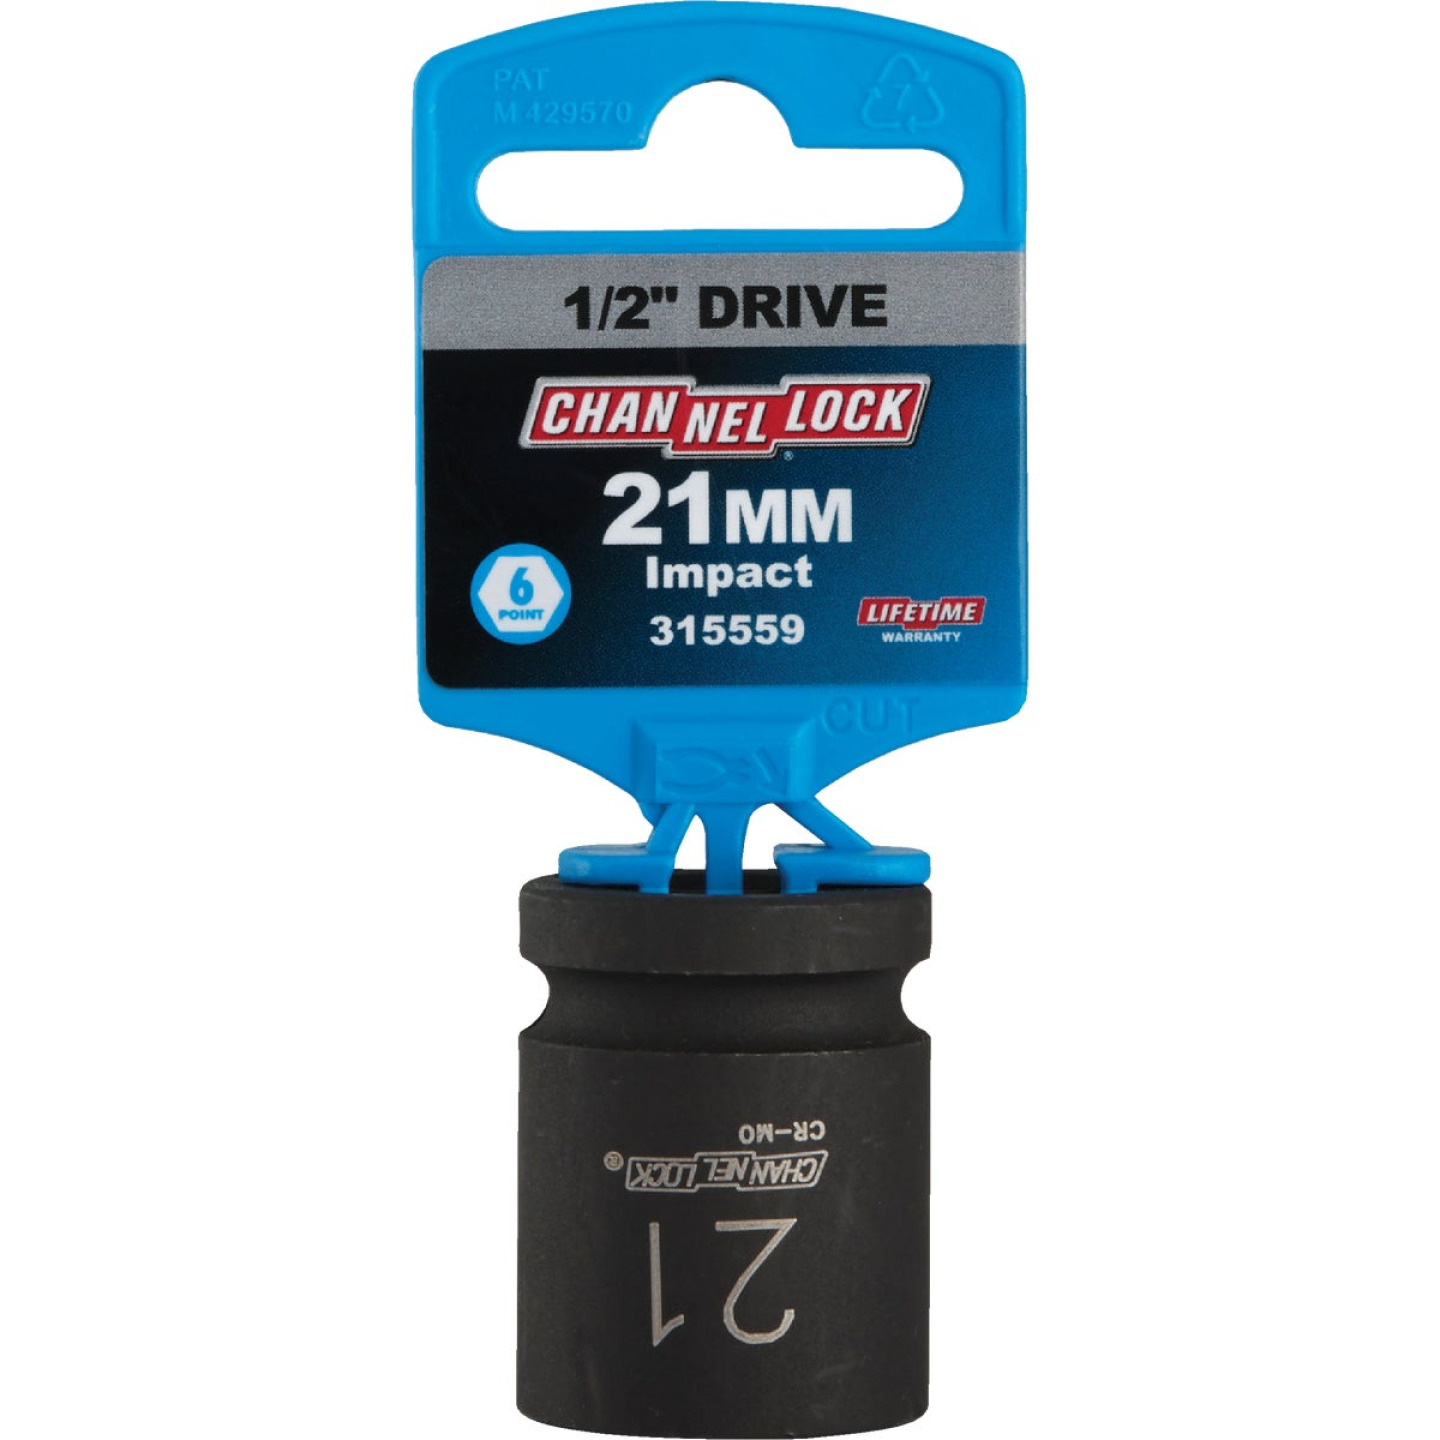 Channellock 1/2 In. Drive 21 mm 6-Point Shallow Metric Impact Socket Image 2